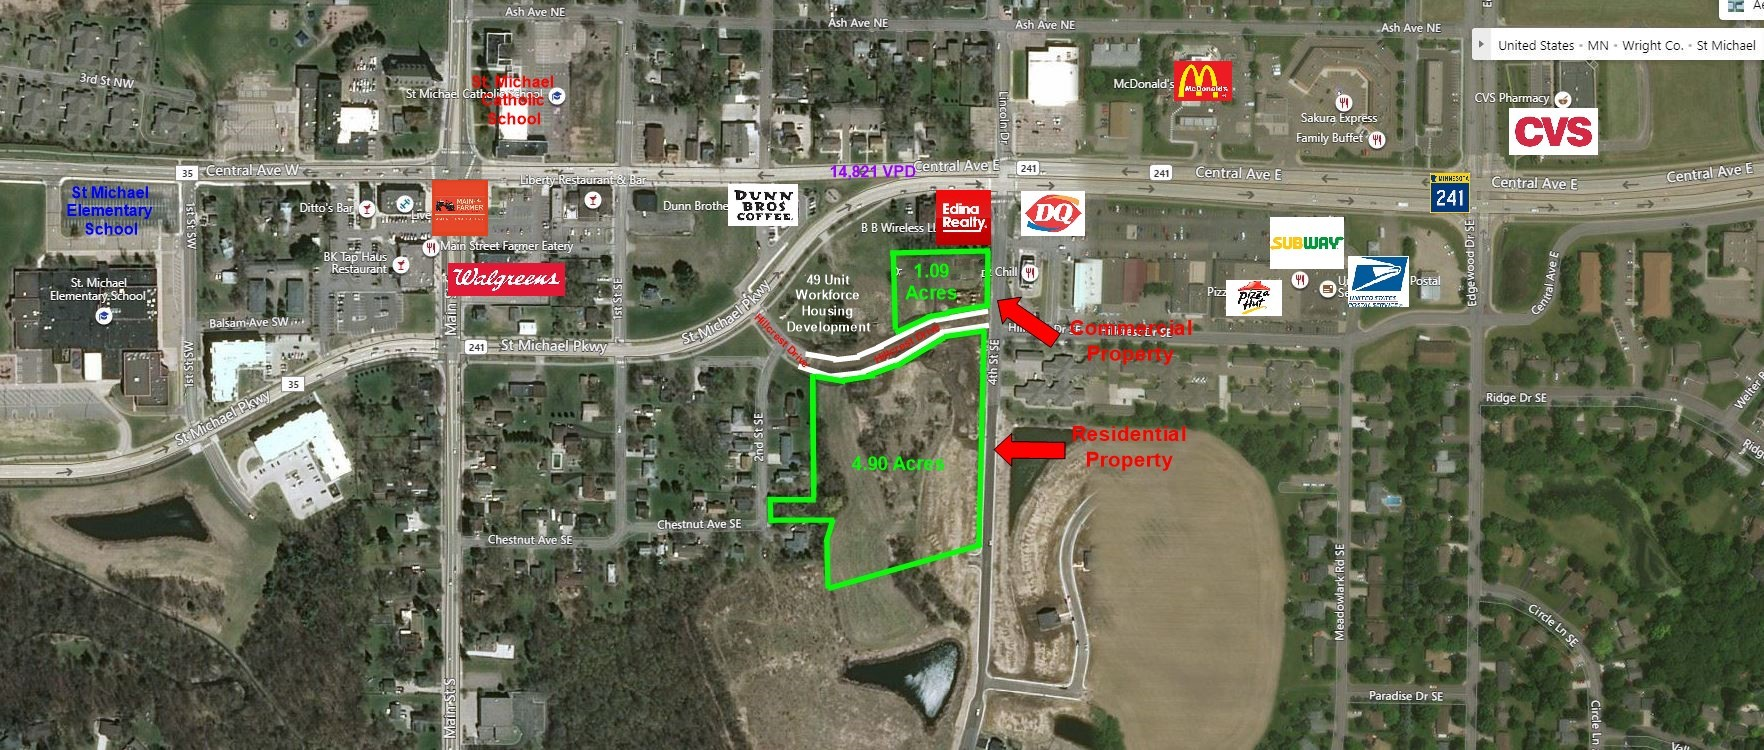 St. Michael, MN | Hillcrest Land Development - Residential